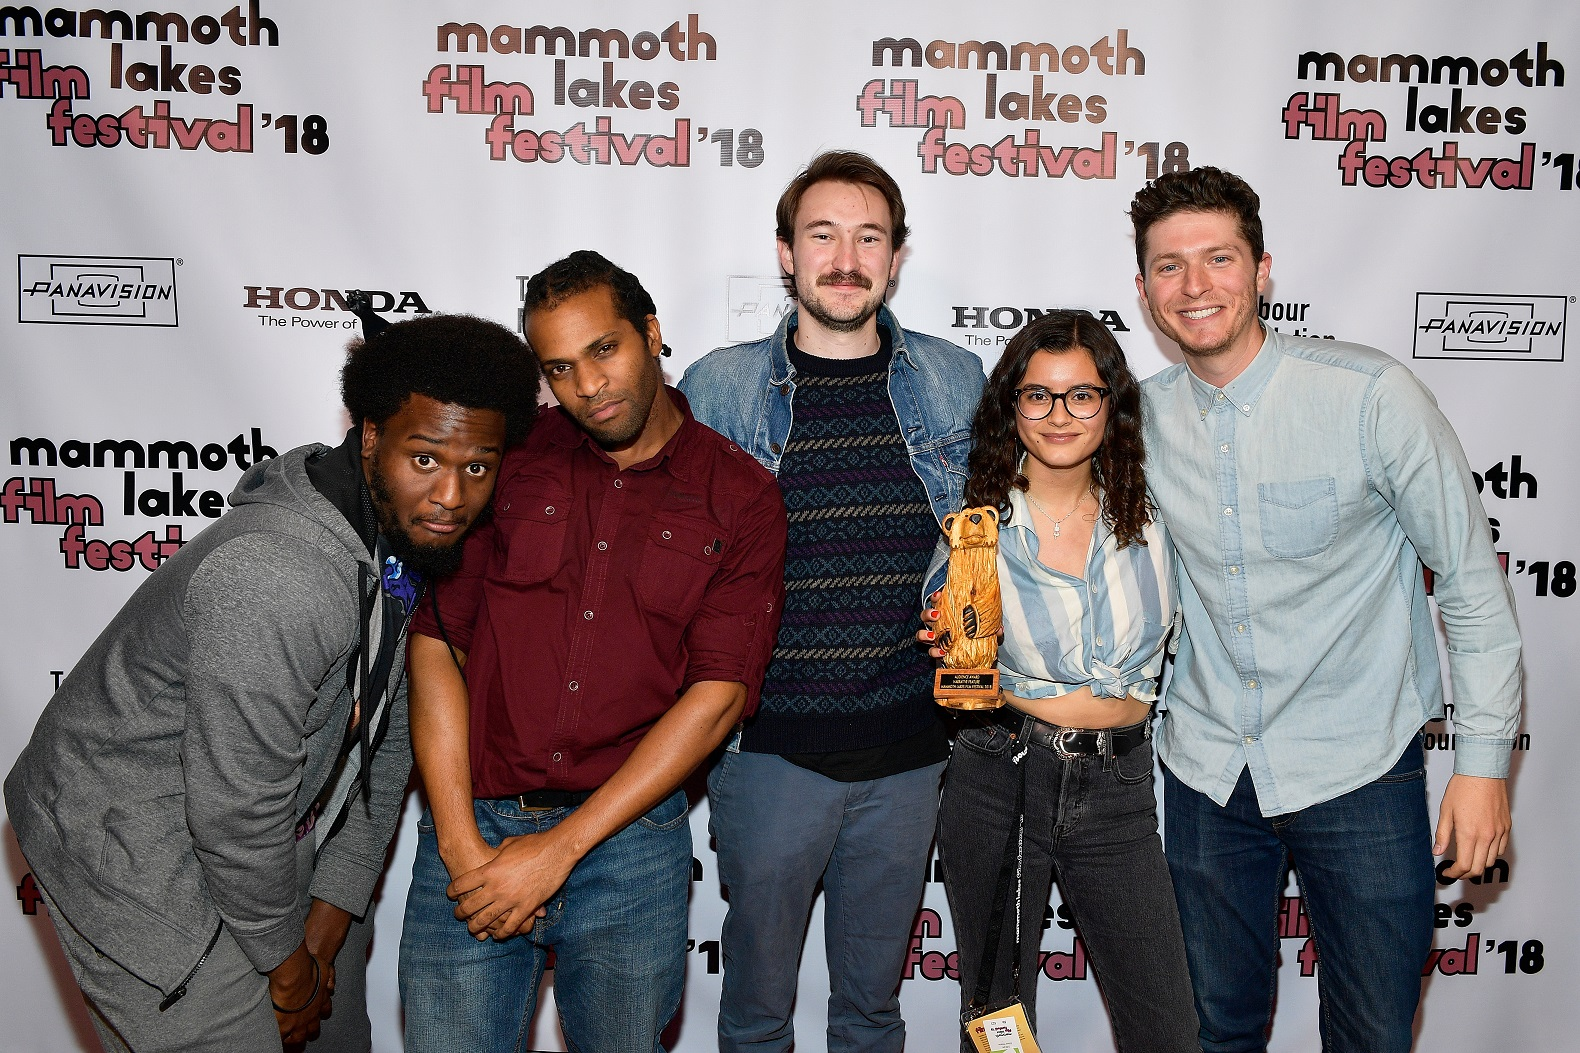 Mammoth Lakes Film Festival 2018 Audience Award Nar Feature